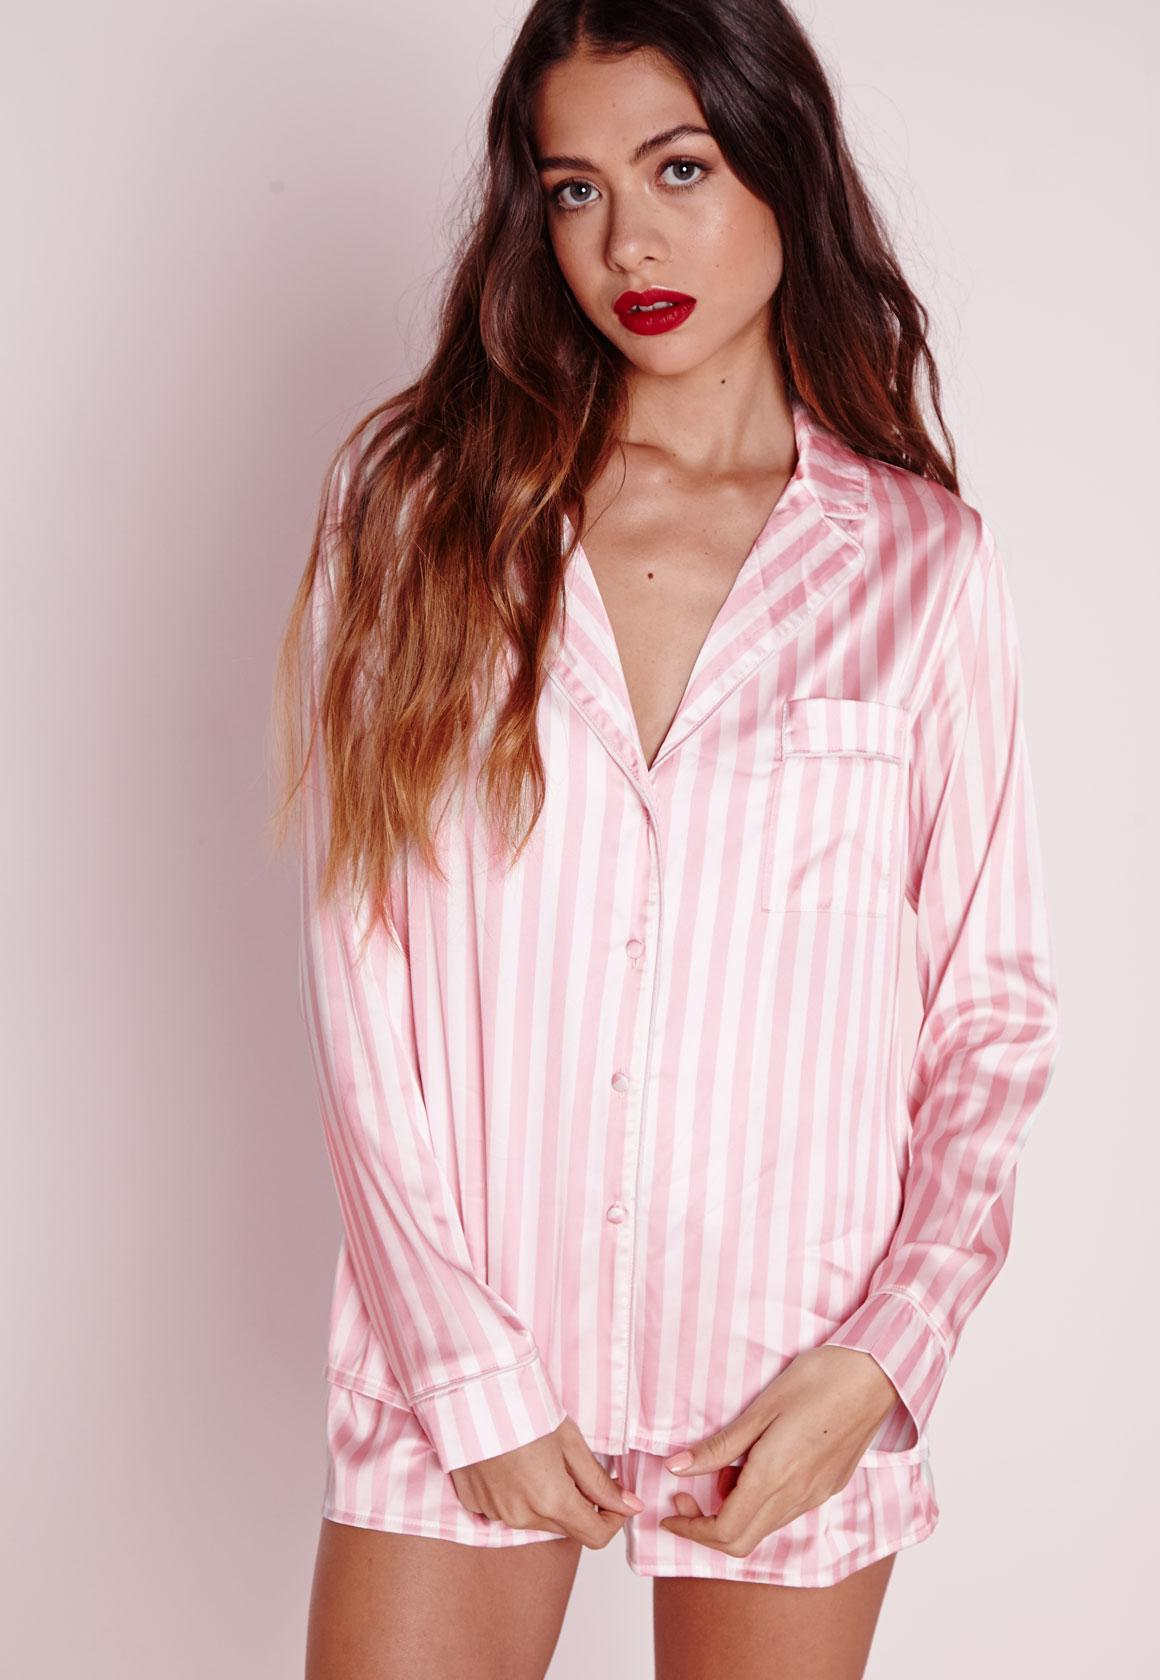 Cheap Visit New Factory Price Missguided Pink Stripe Tie Front Short Pyjama Set nkAyMaJY4f